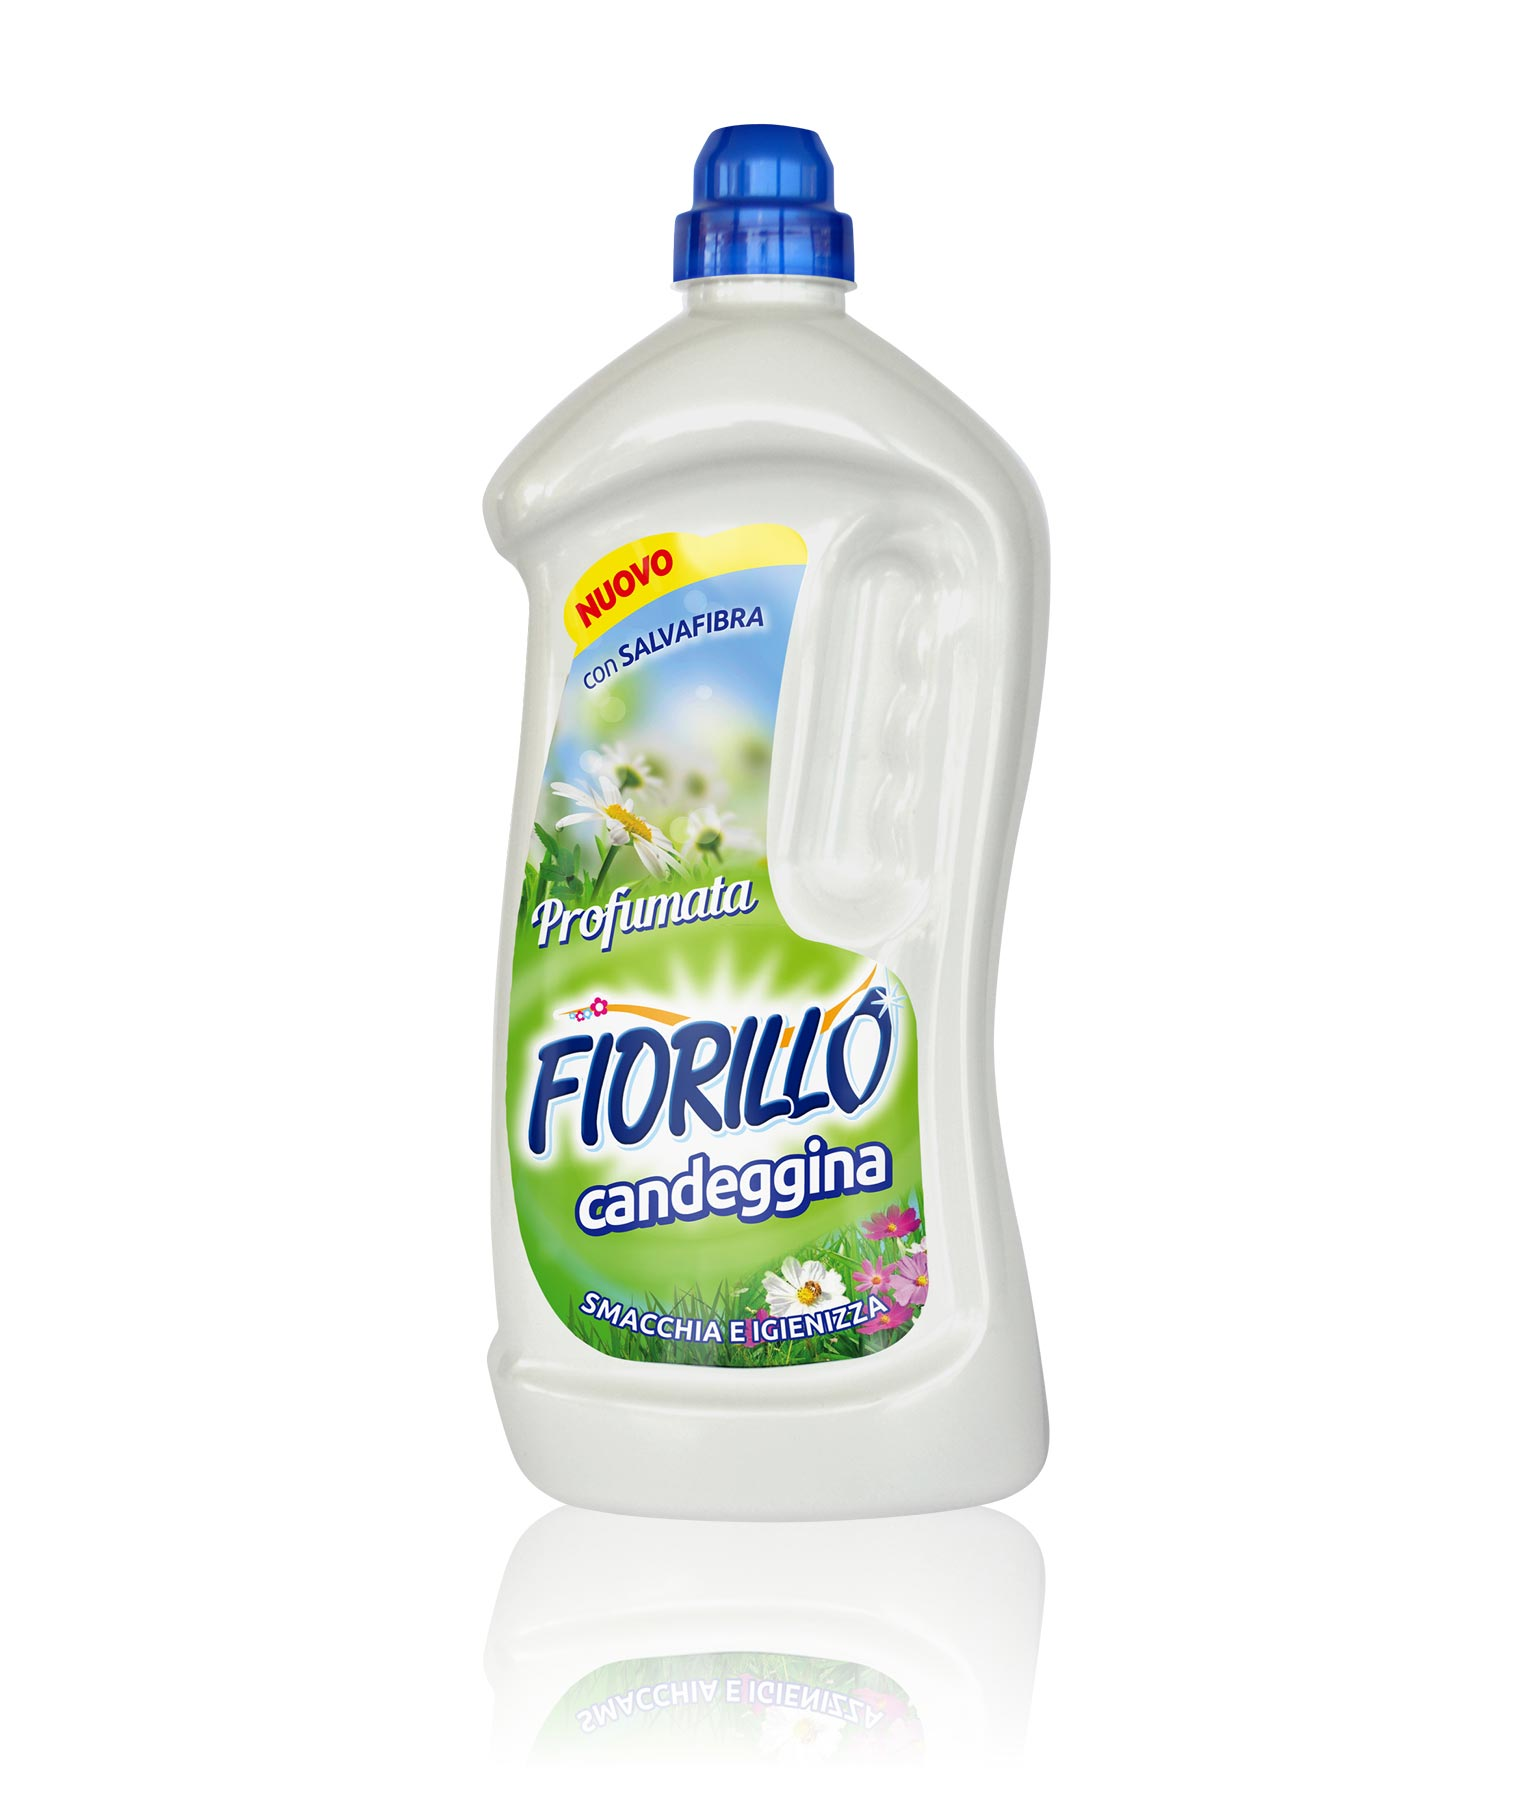 fiorillo candeggina profumata 1850 ml